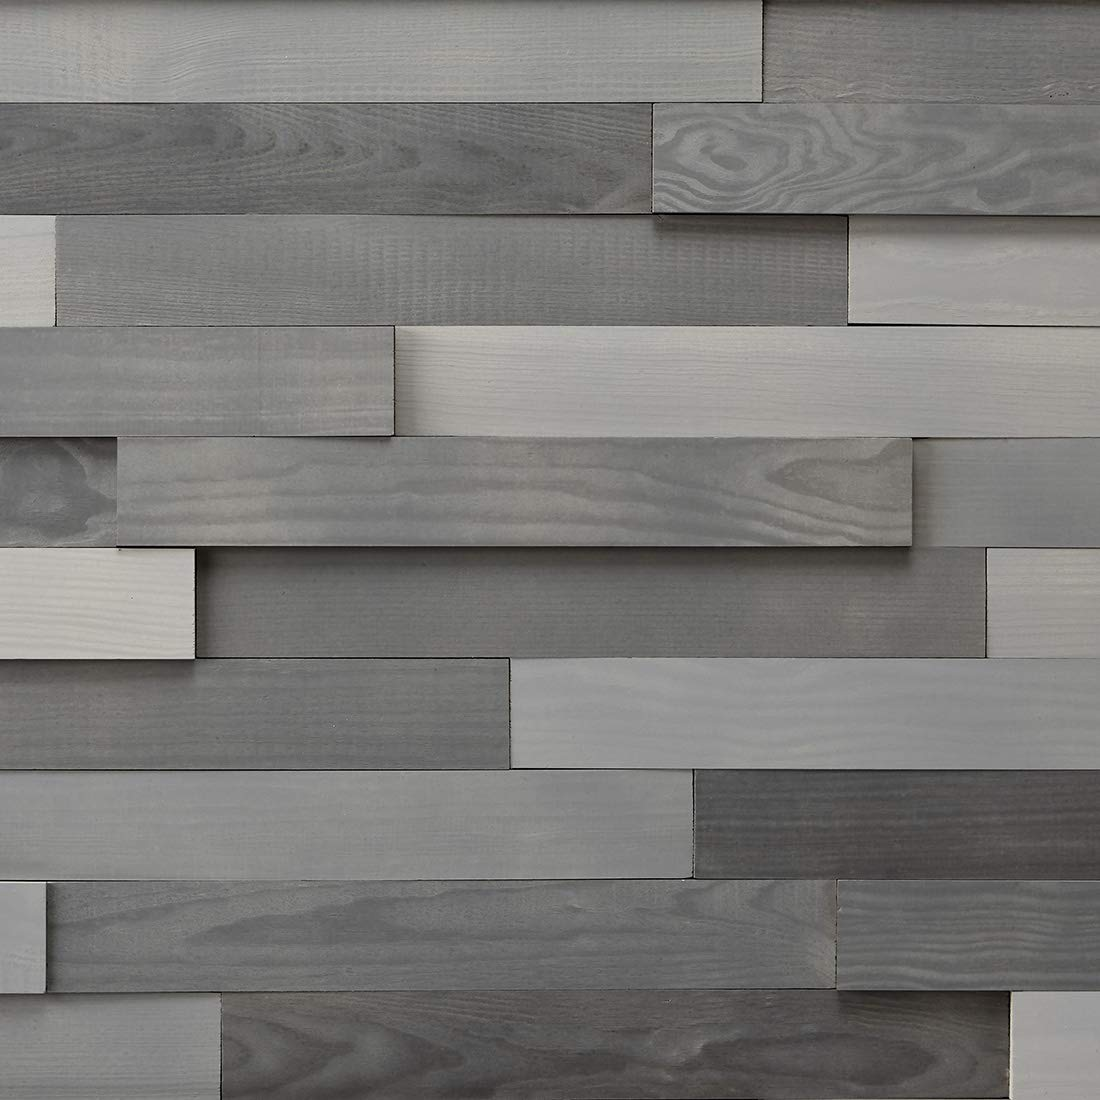 Timberwall - Landscape Collection Urban - DIY Wood Wall Panel - Solid Wood Planks - Easy Peel and Stick Application - 9.8 Sq Ft